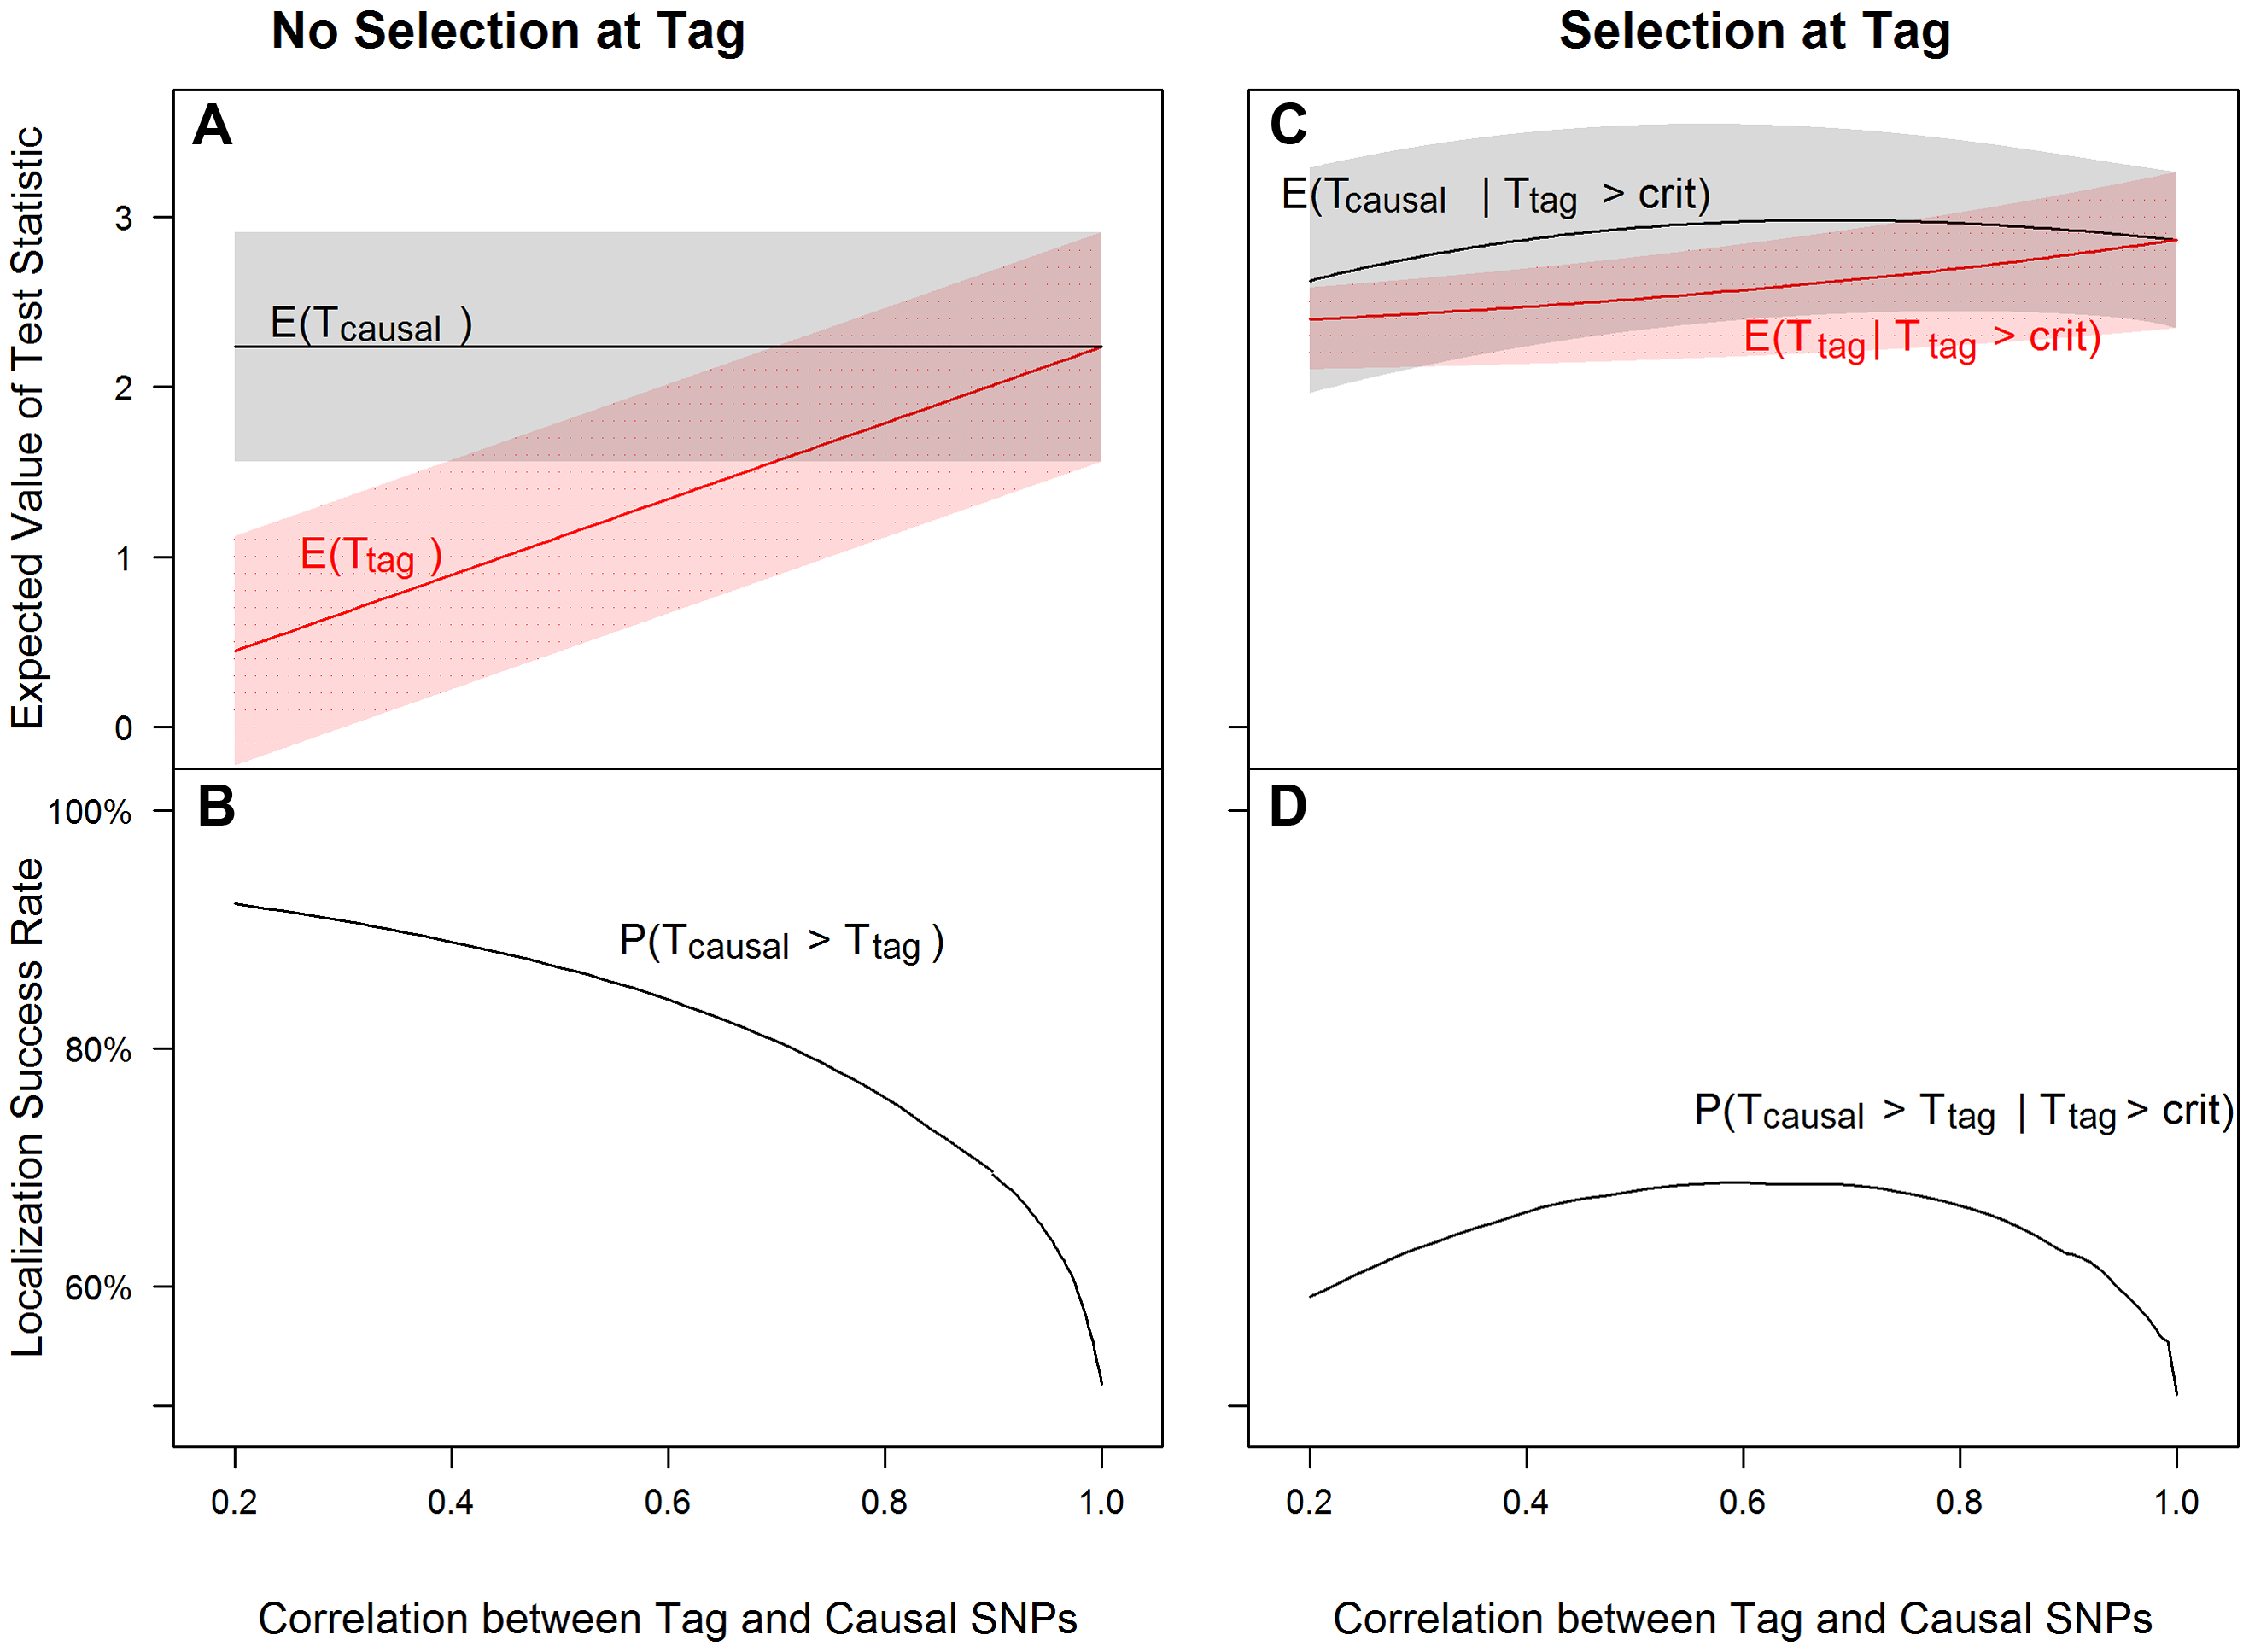 Tagging effect decreases localization success rates with or without the selection effect.